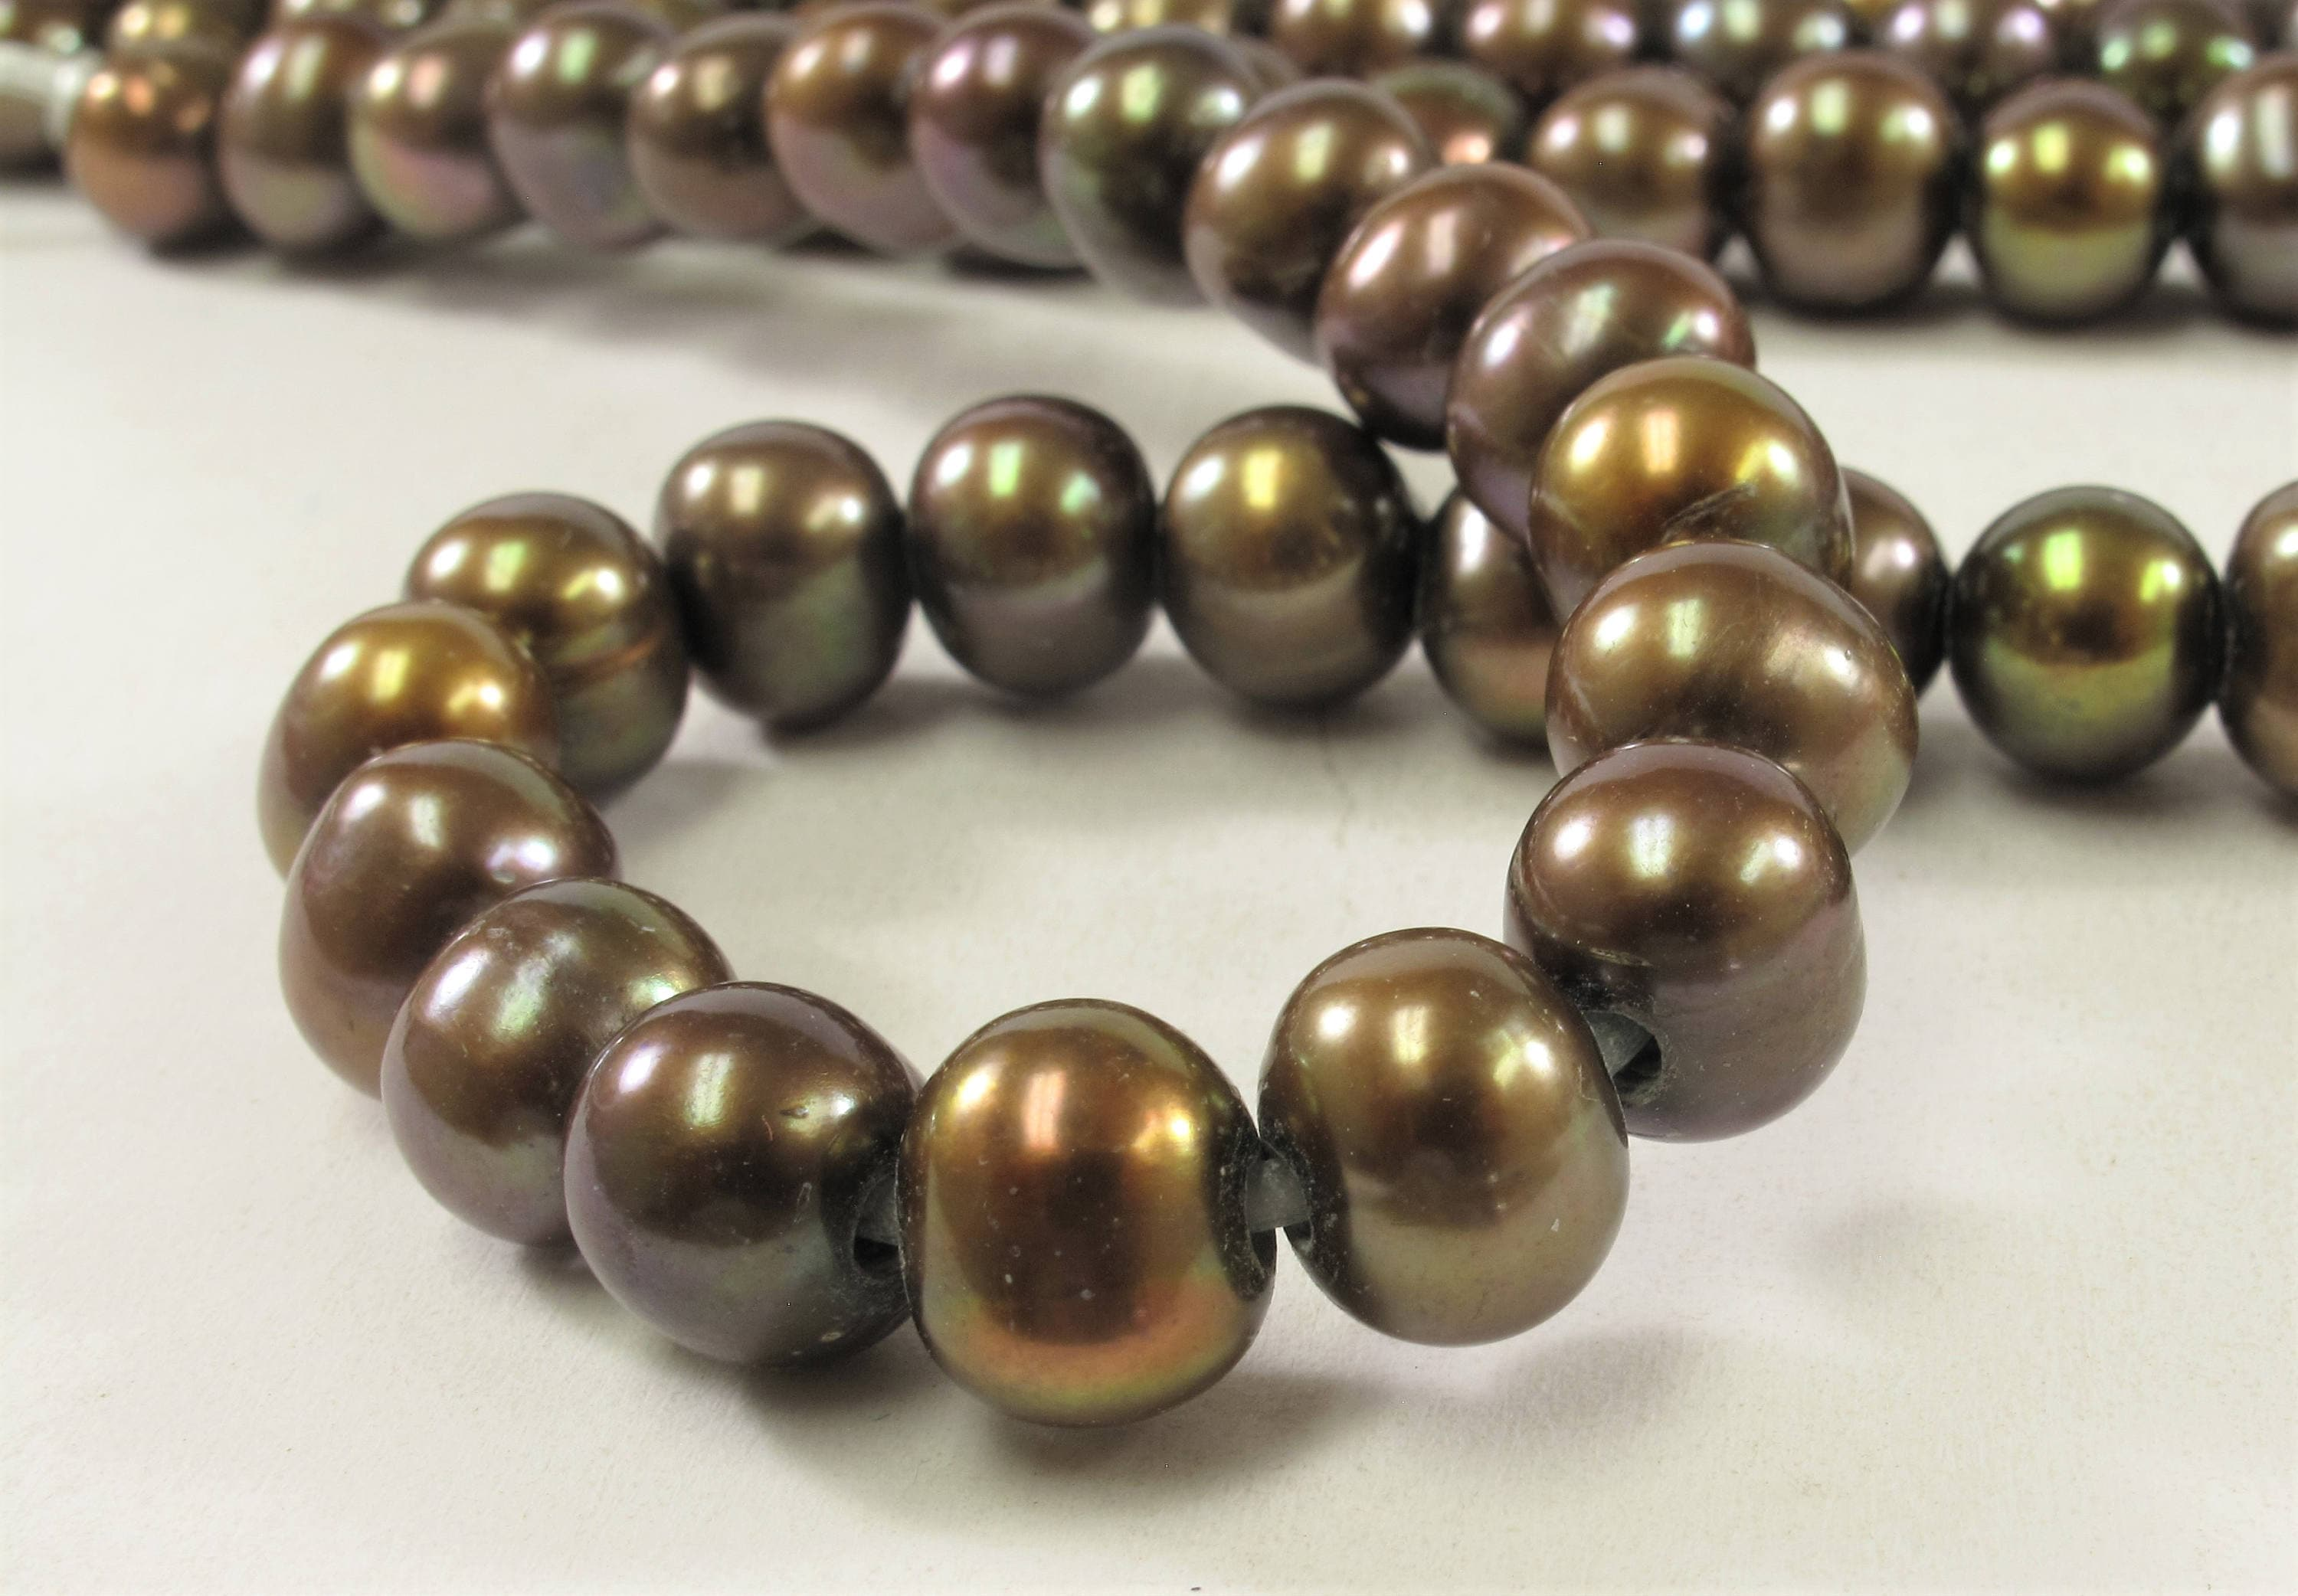 11 to 12 mm AA Large Hole Freshwater Pearl Beads Dark Brown 2.2 mm Hole #160